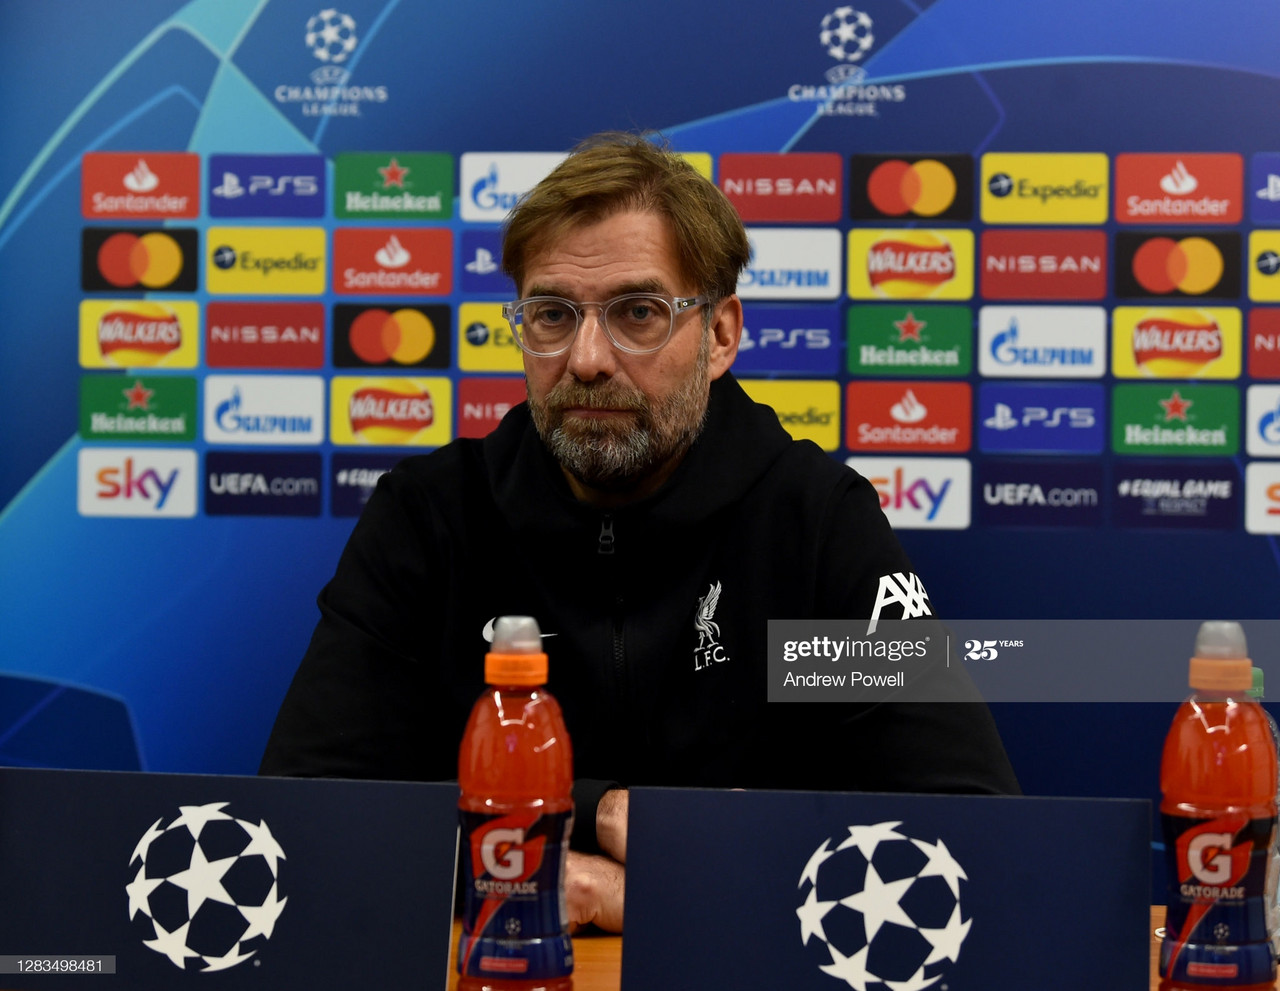 LIVERPOOL, ENGLAND - NOVEMBER 02: (THE SUN OUT, THE SUN ON SUNDAY OUT) Jurgen Klopp manager of Liverpool during a press conference ahead of the UEFA Champions League Group D stage match between Liverpool FC and Atalanta BC at Melwood Training Ground on November 02, 2020 in Liverpool, England. (Photo by Andrew Powell/Liverpool FC via Getty Images)